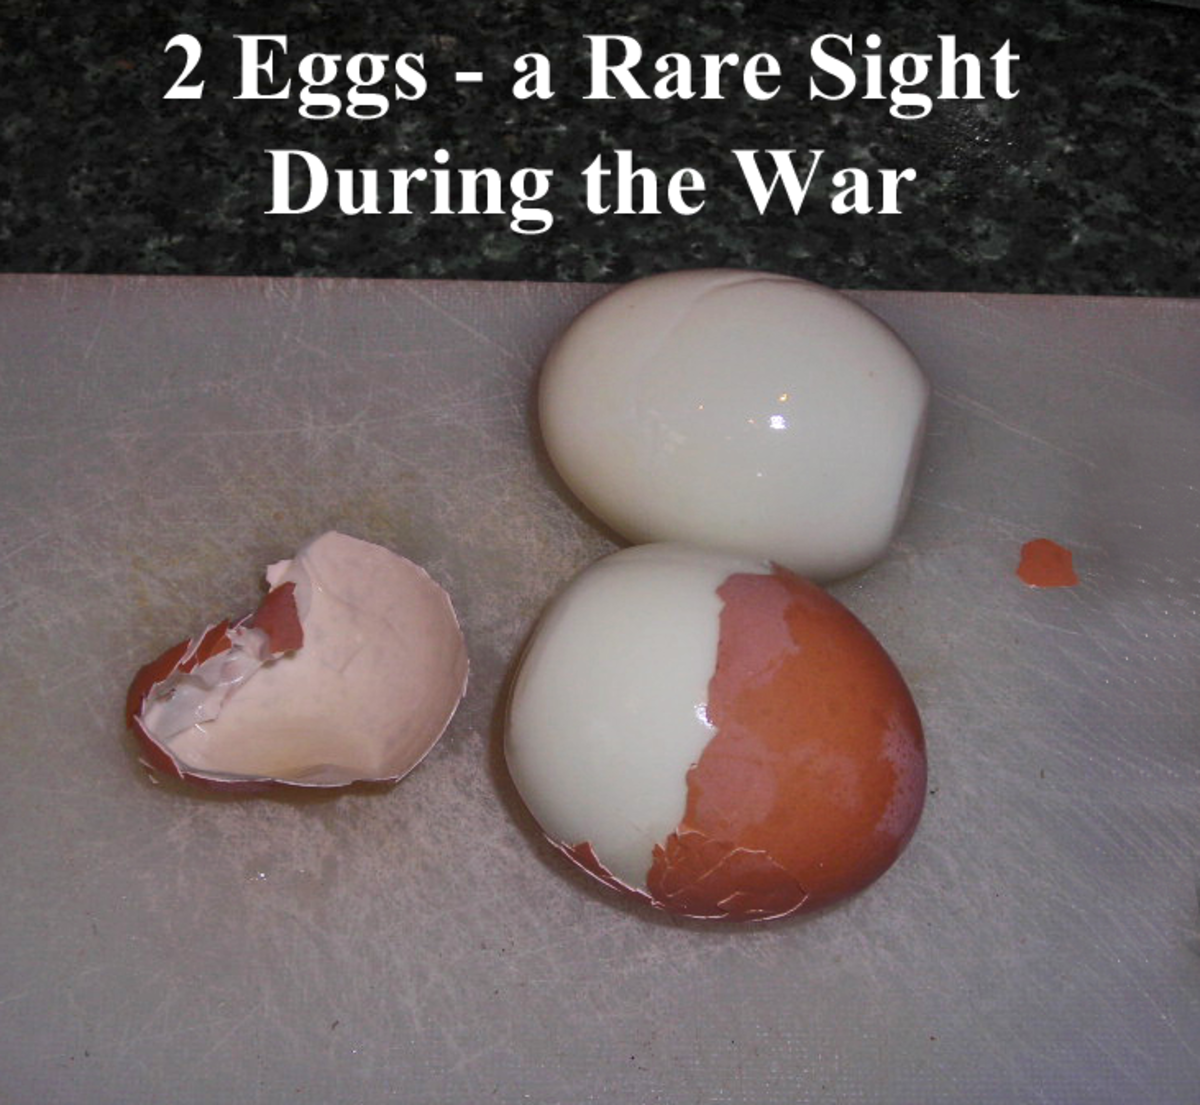 Hard-boiled eggs, rations for two. They would go further if mashed.